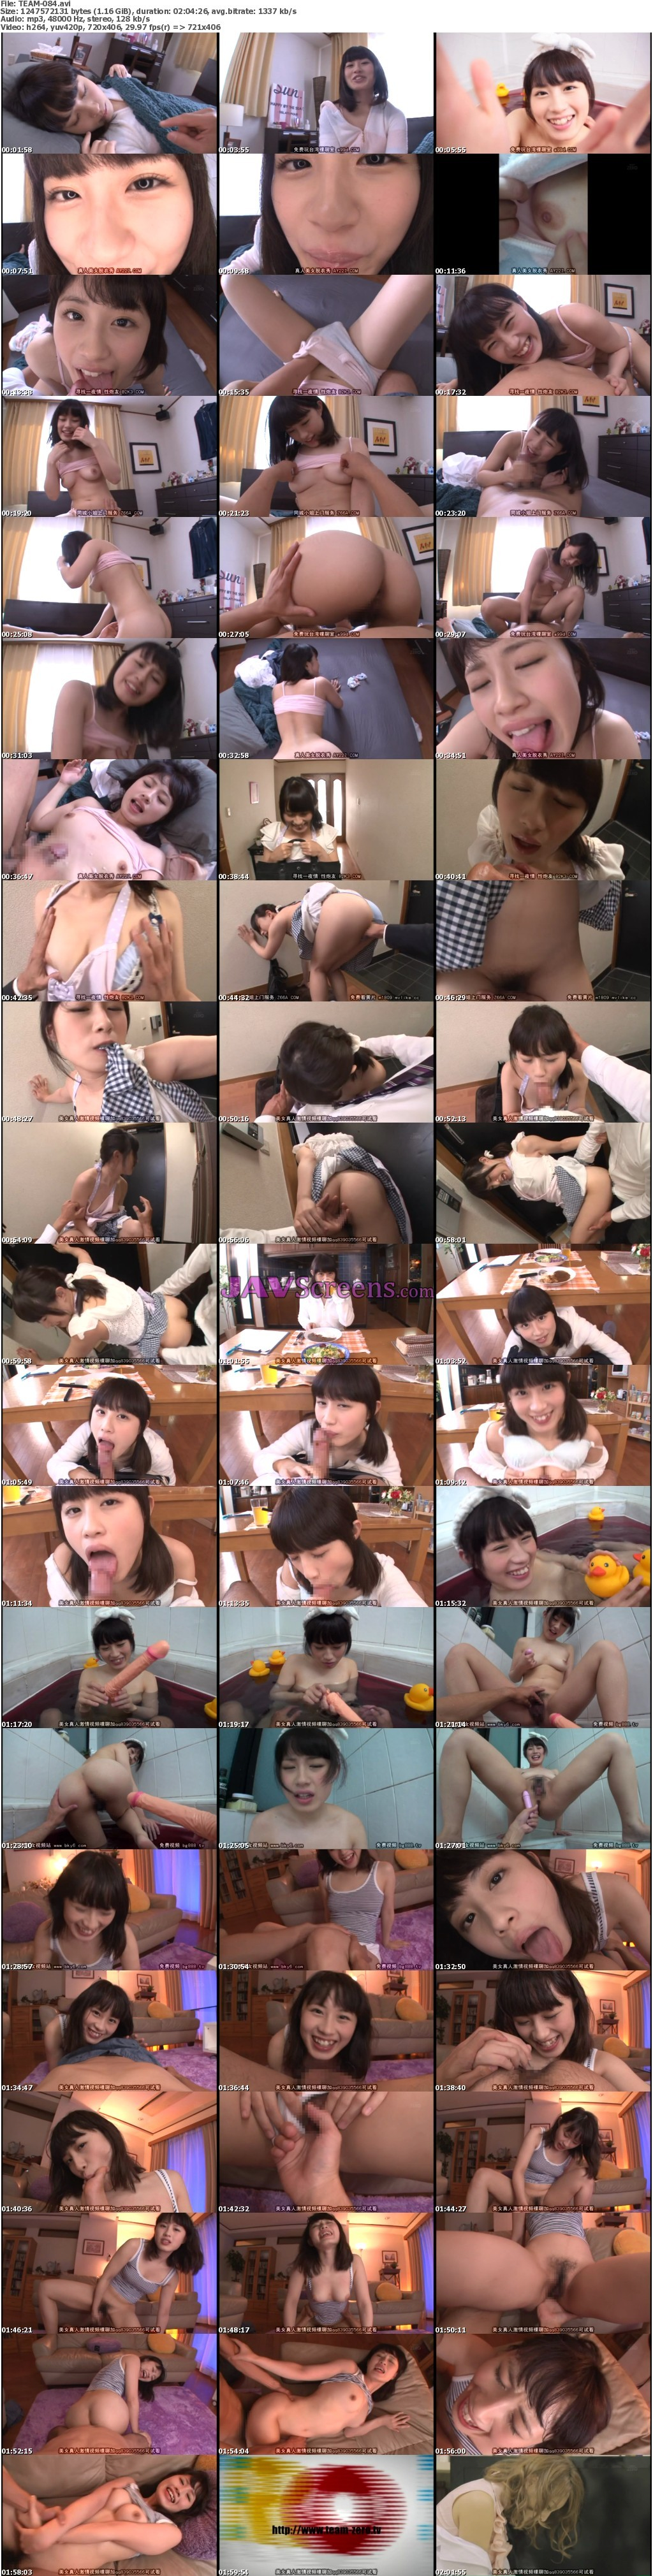 TEAM-084.jpg - JAV Screenshot